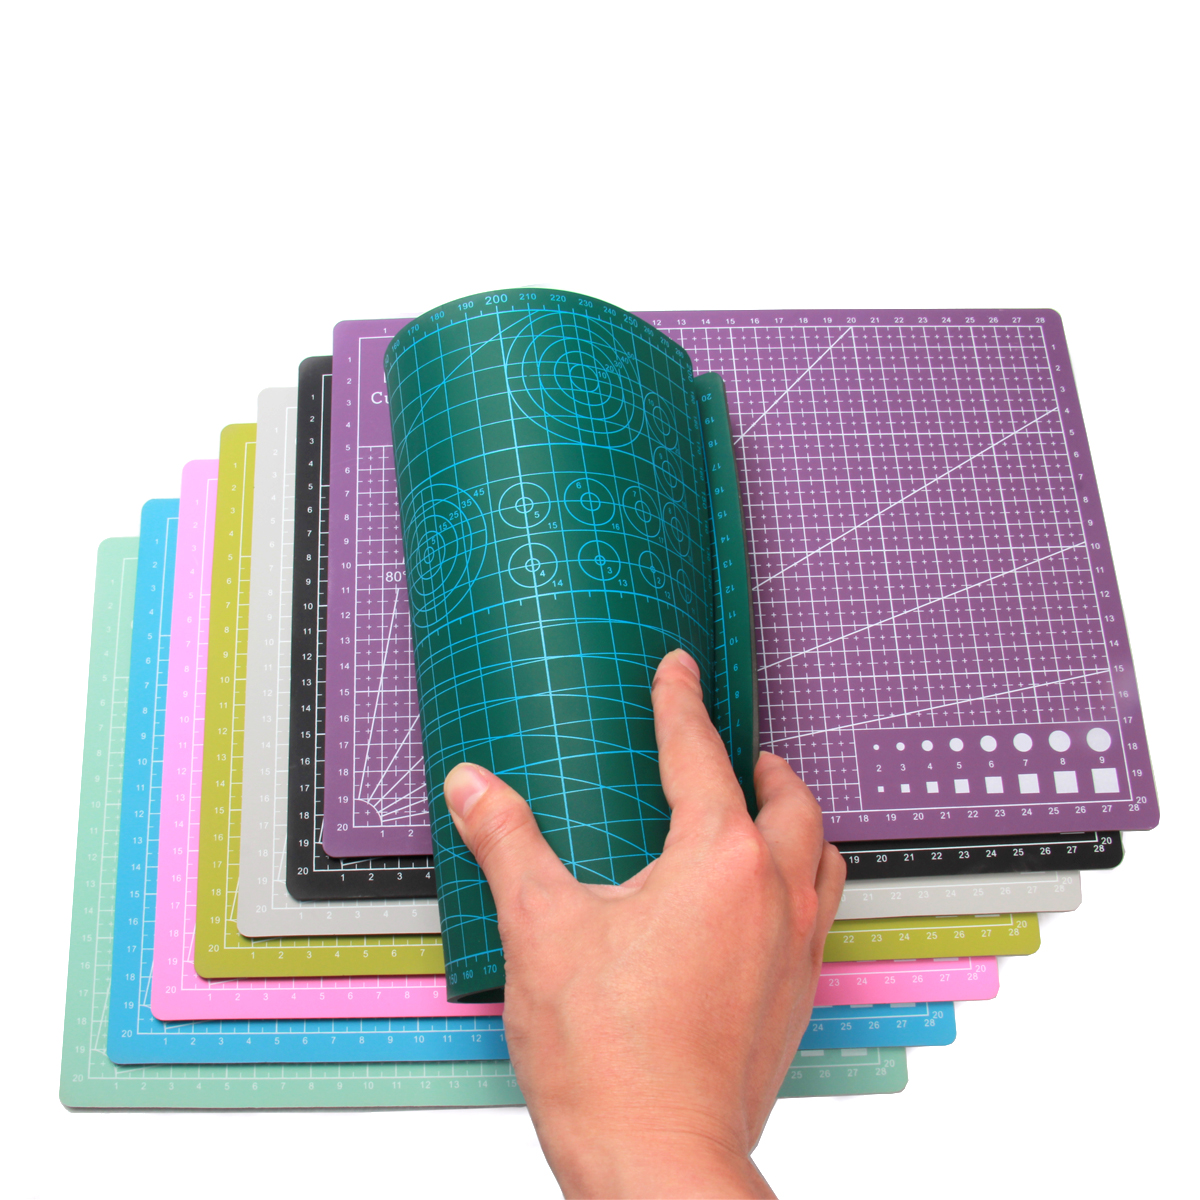 A3 A4 Cutting Mats Pvc Rectangle Grid Lines Self Healing Cutting Board Tool Fabric Leather Paper Craft DIY Tools Plate PadA3 A4 Cutting Mats Pvc Rectangle Grid Lines Self Healing Cutting Board Tool Fabric Leather Paper Craft DIY Tools Plate Pad